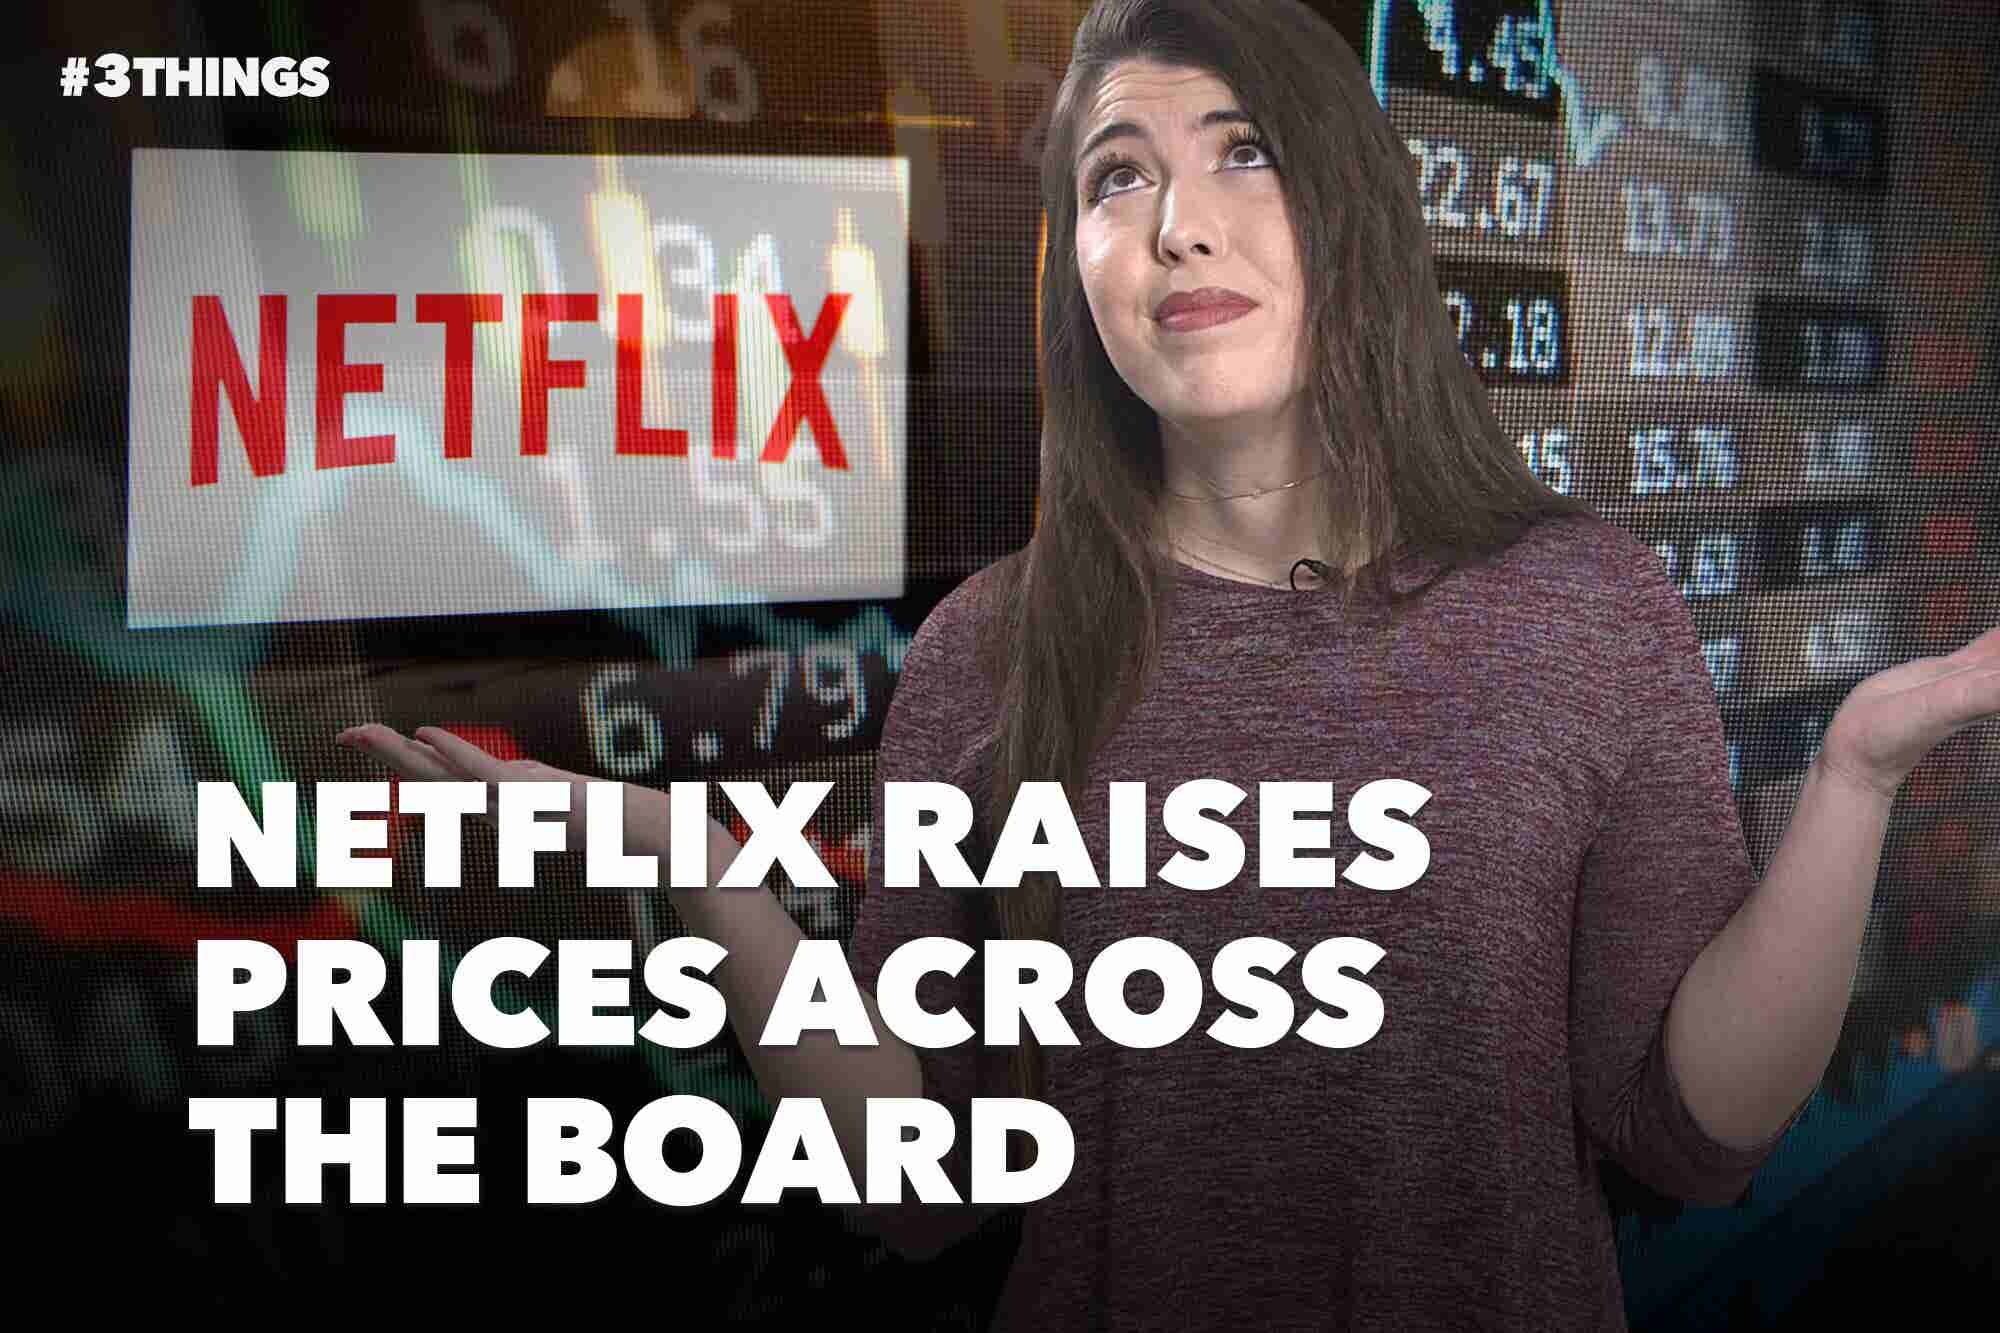 Netflix Raises Prices, YouTube Bans Dangerous Pranks and Snap Inc.'s CFO Quits. (60-Second Video)